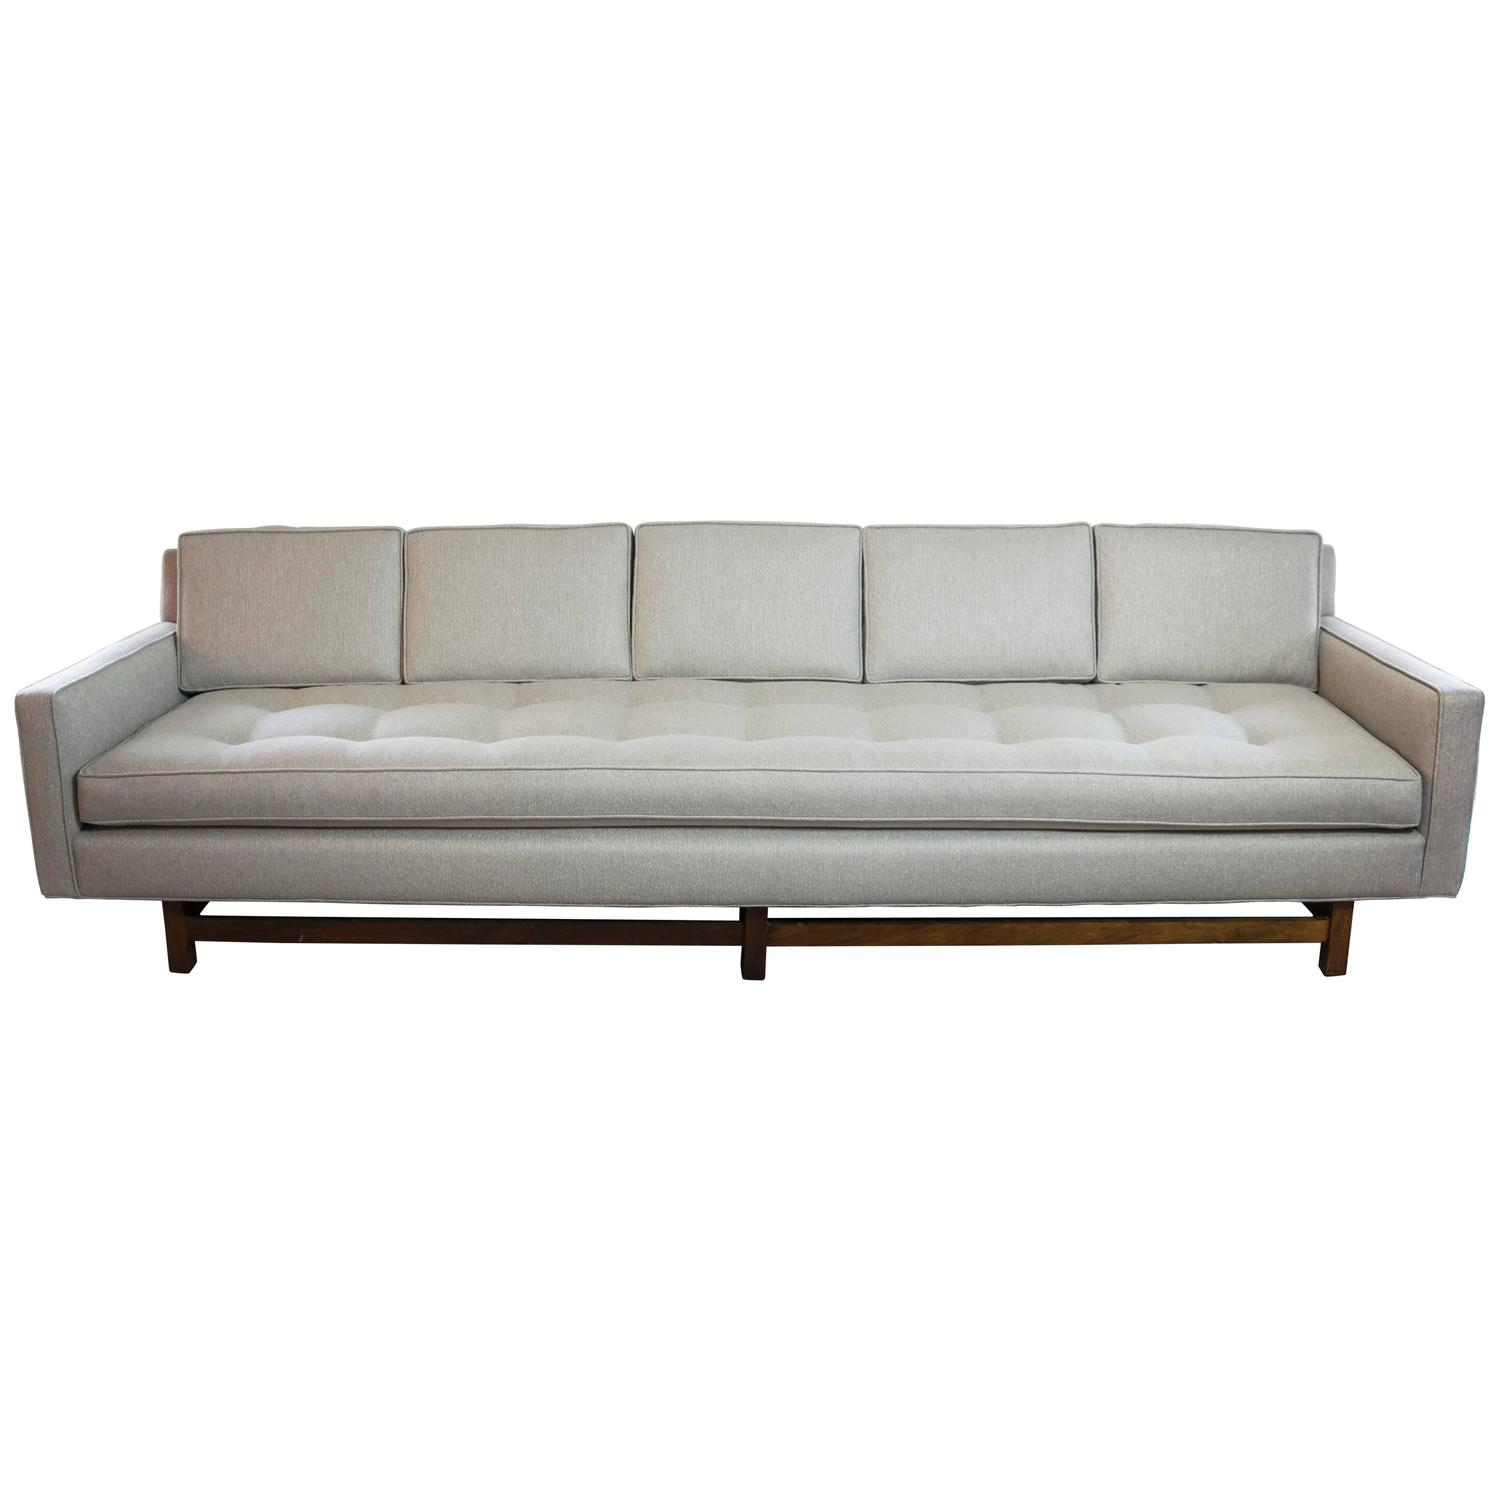 Extra Long Tuxedo Sofa In The Style Of Harvey Probber For Sale At 1stdibs